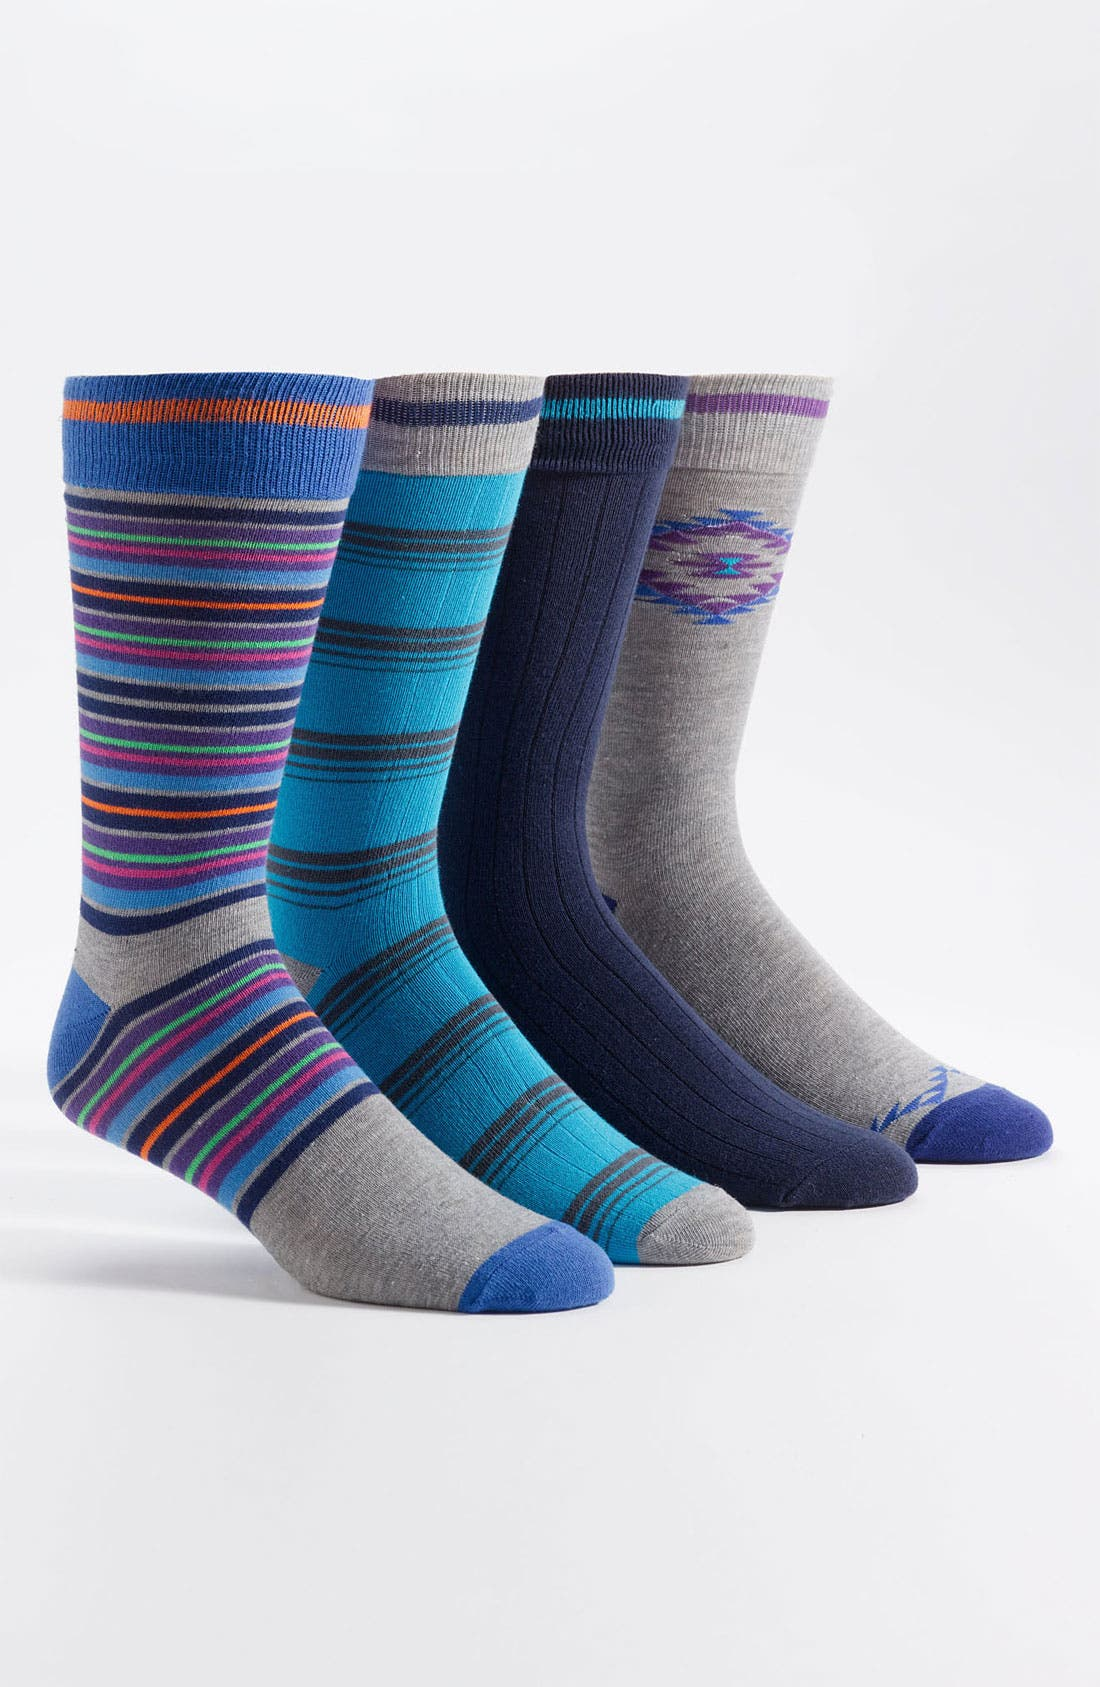 Main Image - Basic Sock Patterned Socks (4-Pack)